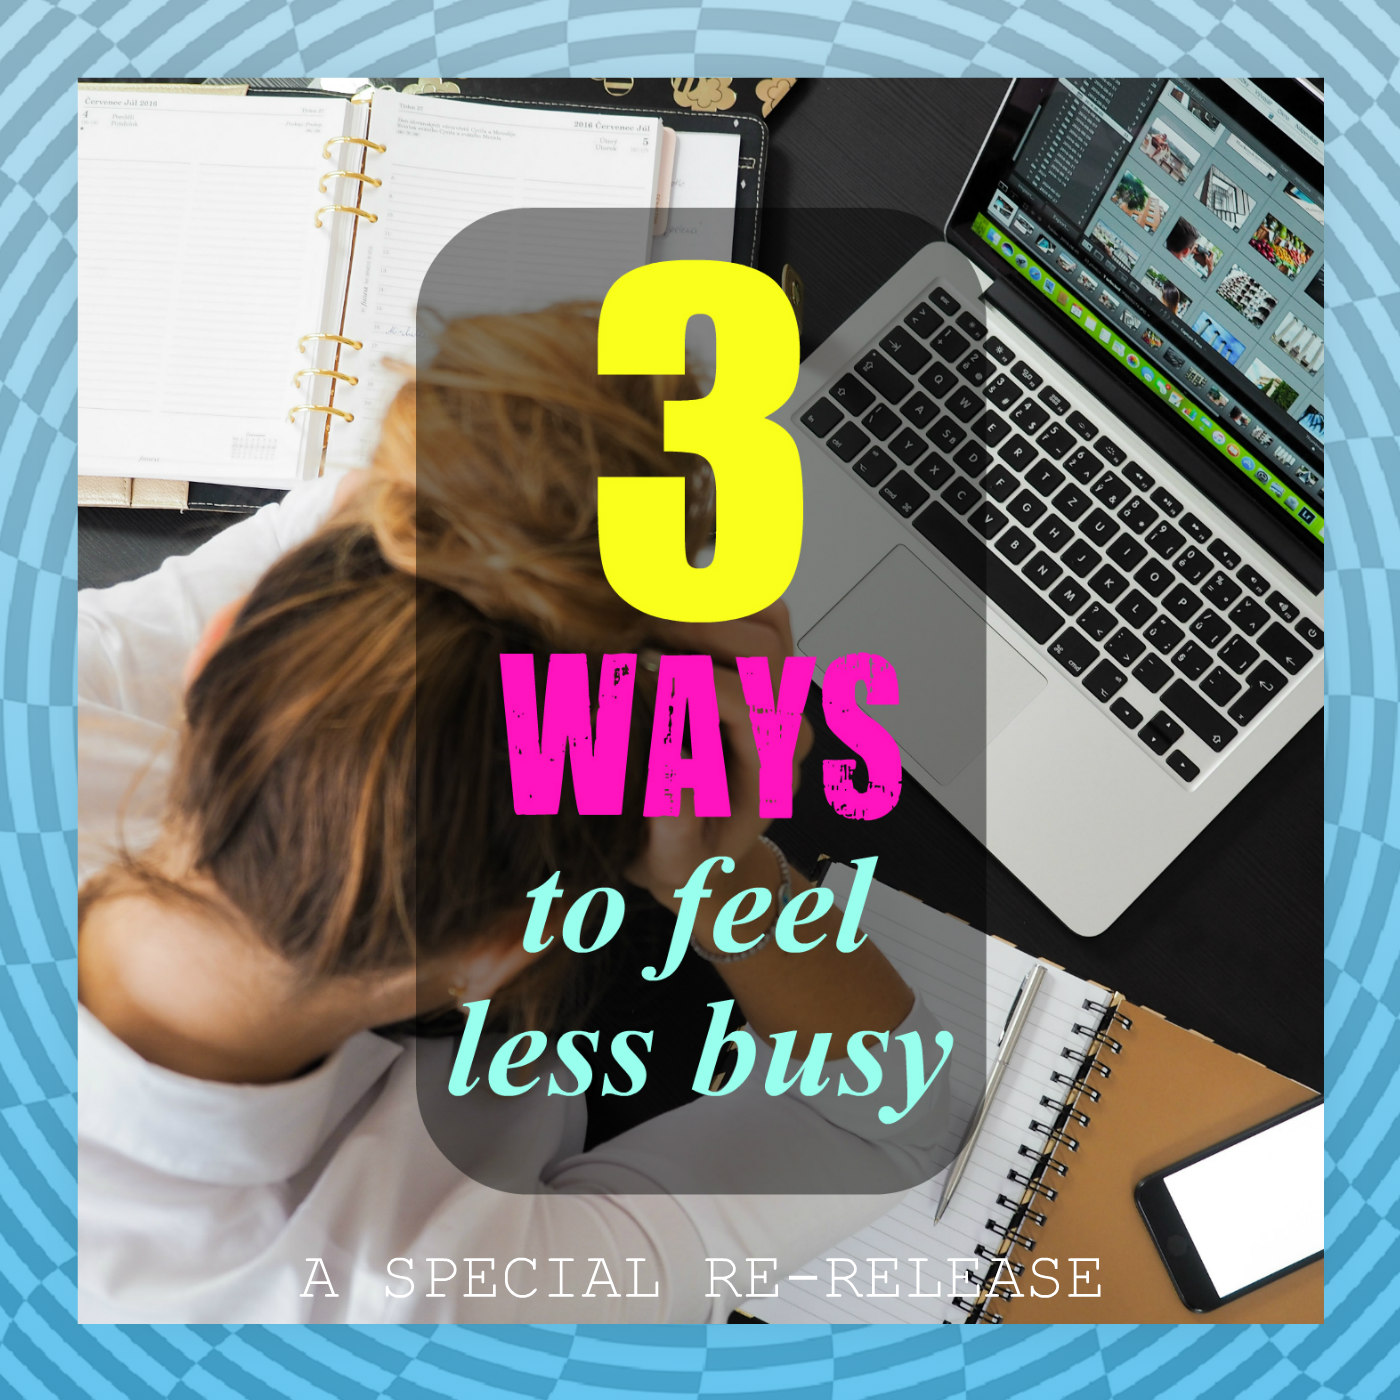 S3 Mini12: 3 Ways to Feel Less Busy